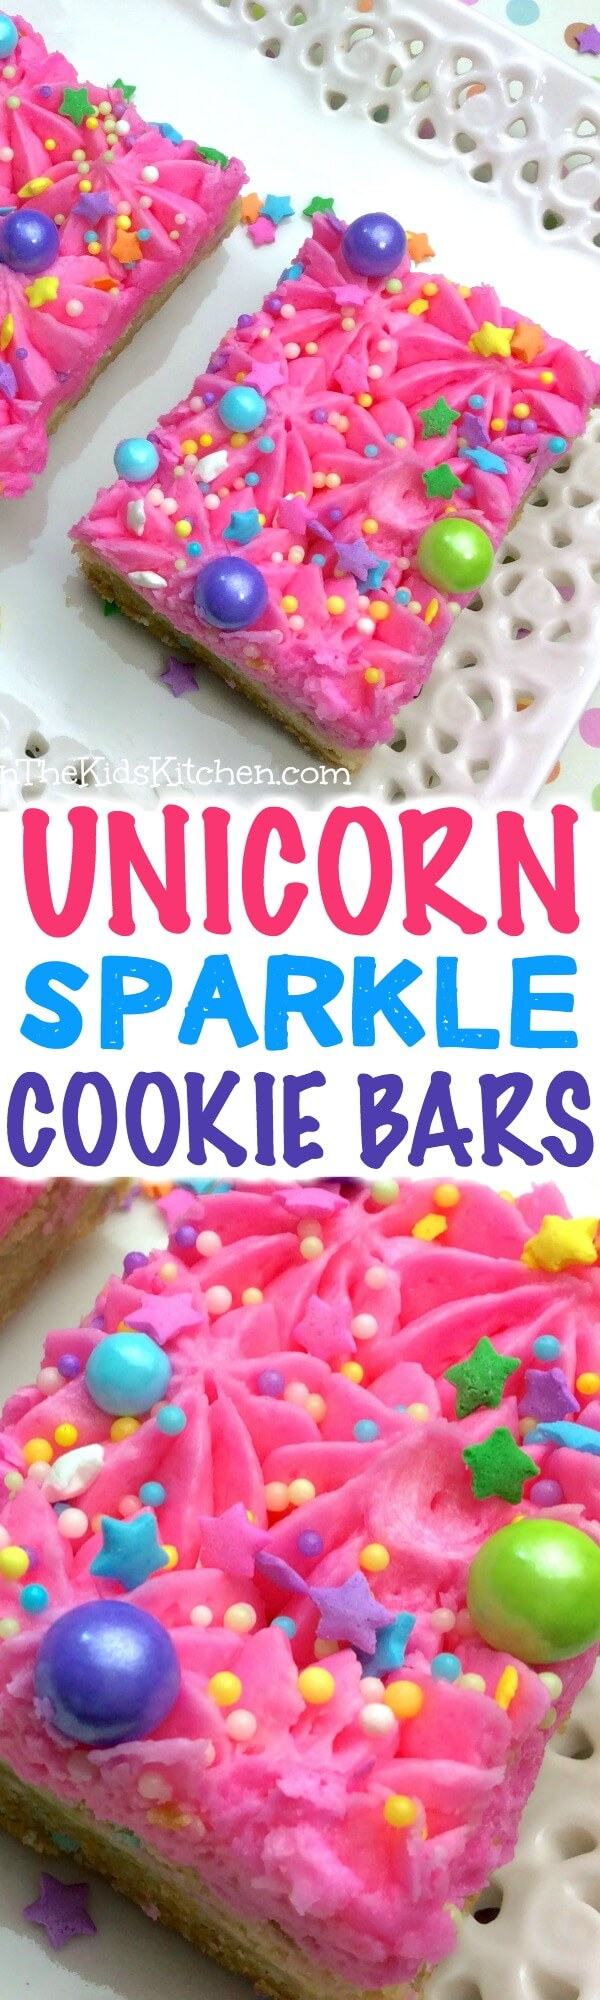 Supremely sparkly and perfect for any occasion — these unicorn sugar cookie bars are almost too much fun! (almost!)